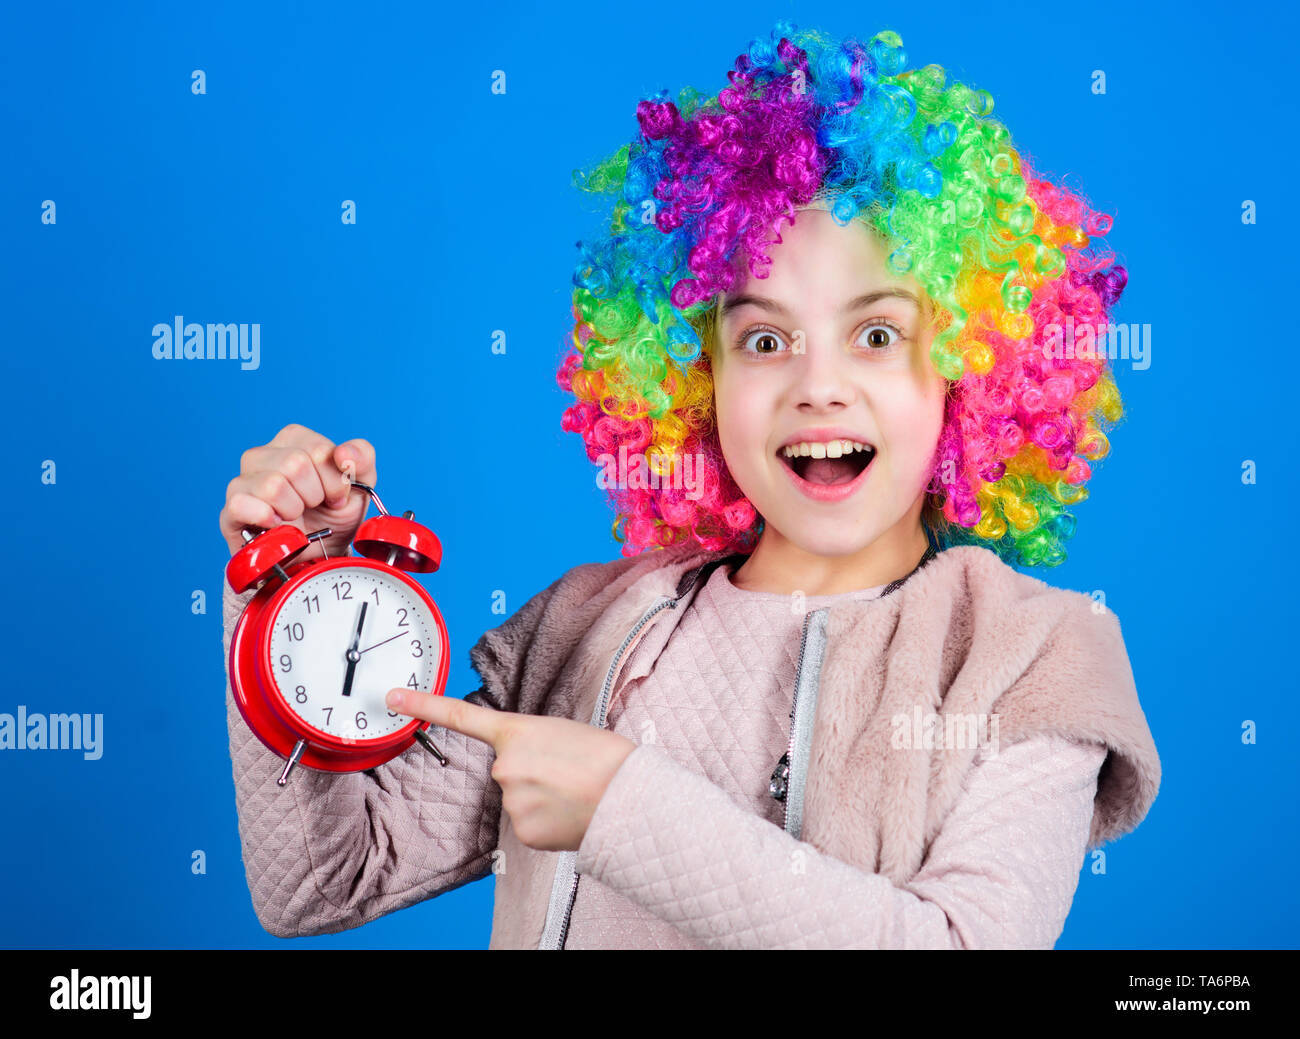 Focusing on accuracy. Happy small child pointing at alarm clock. Little girl smiling with clock. Accuracy and neatness. Perfect time accuracy. Accuracy concept. - Stock Image